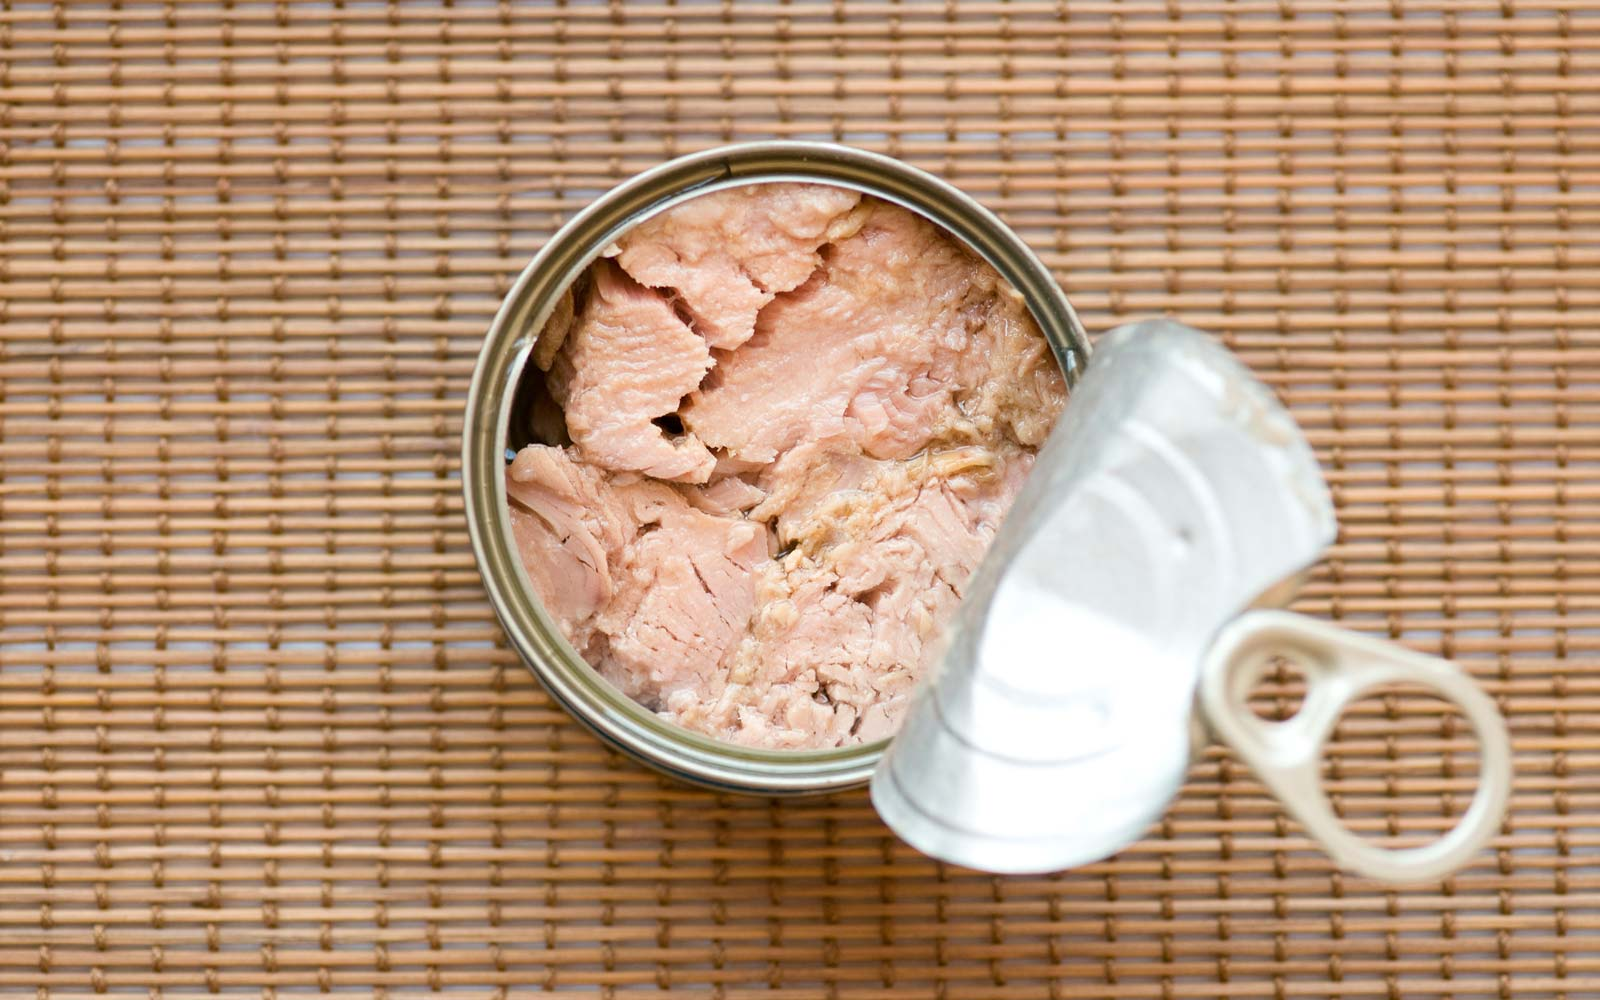 Millennials Are Killing the Tuna Fish Industry: They 'Don't Even Own Can Openers'